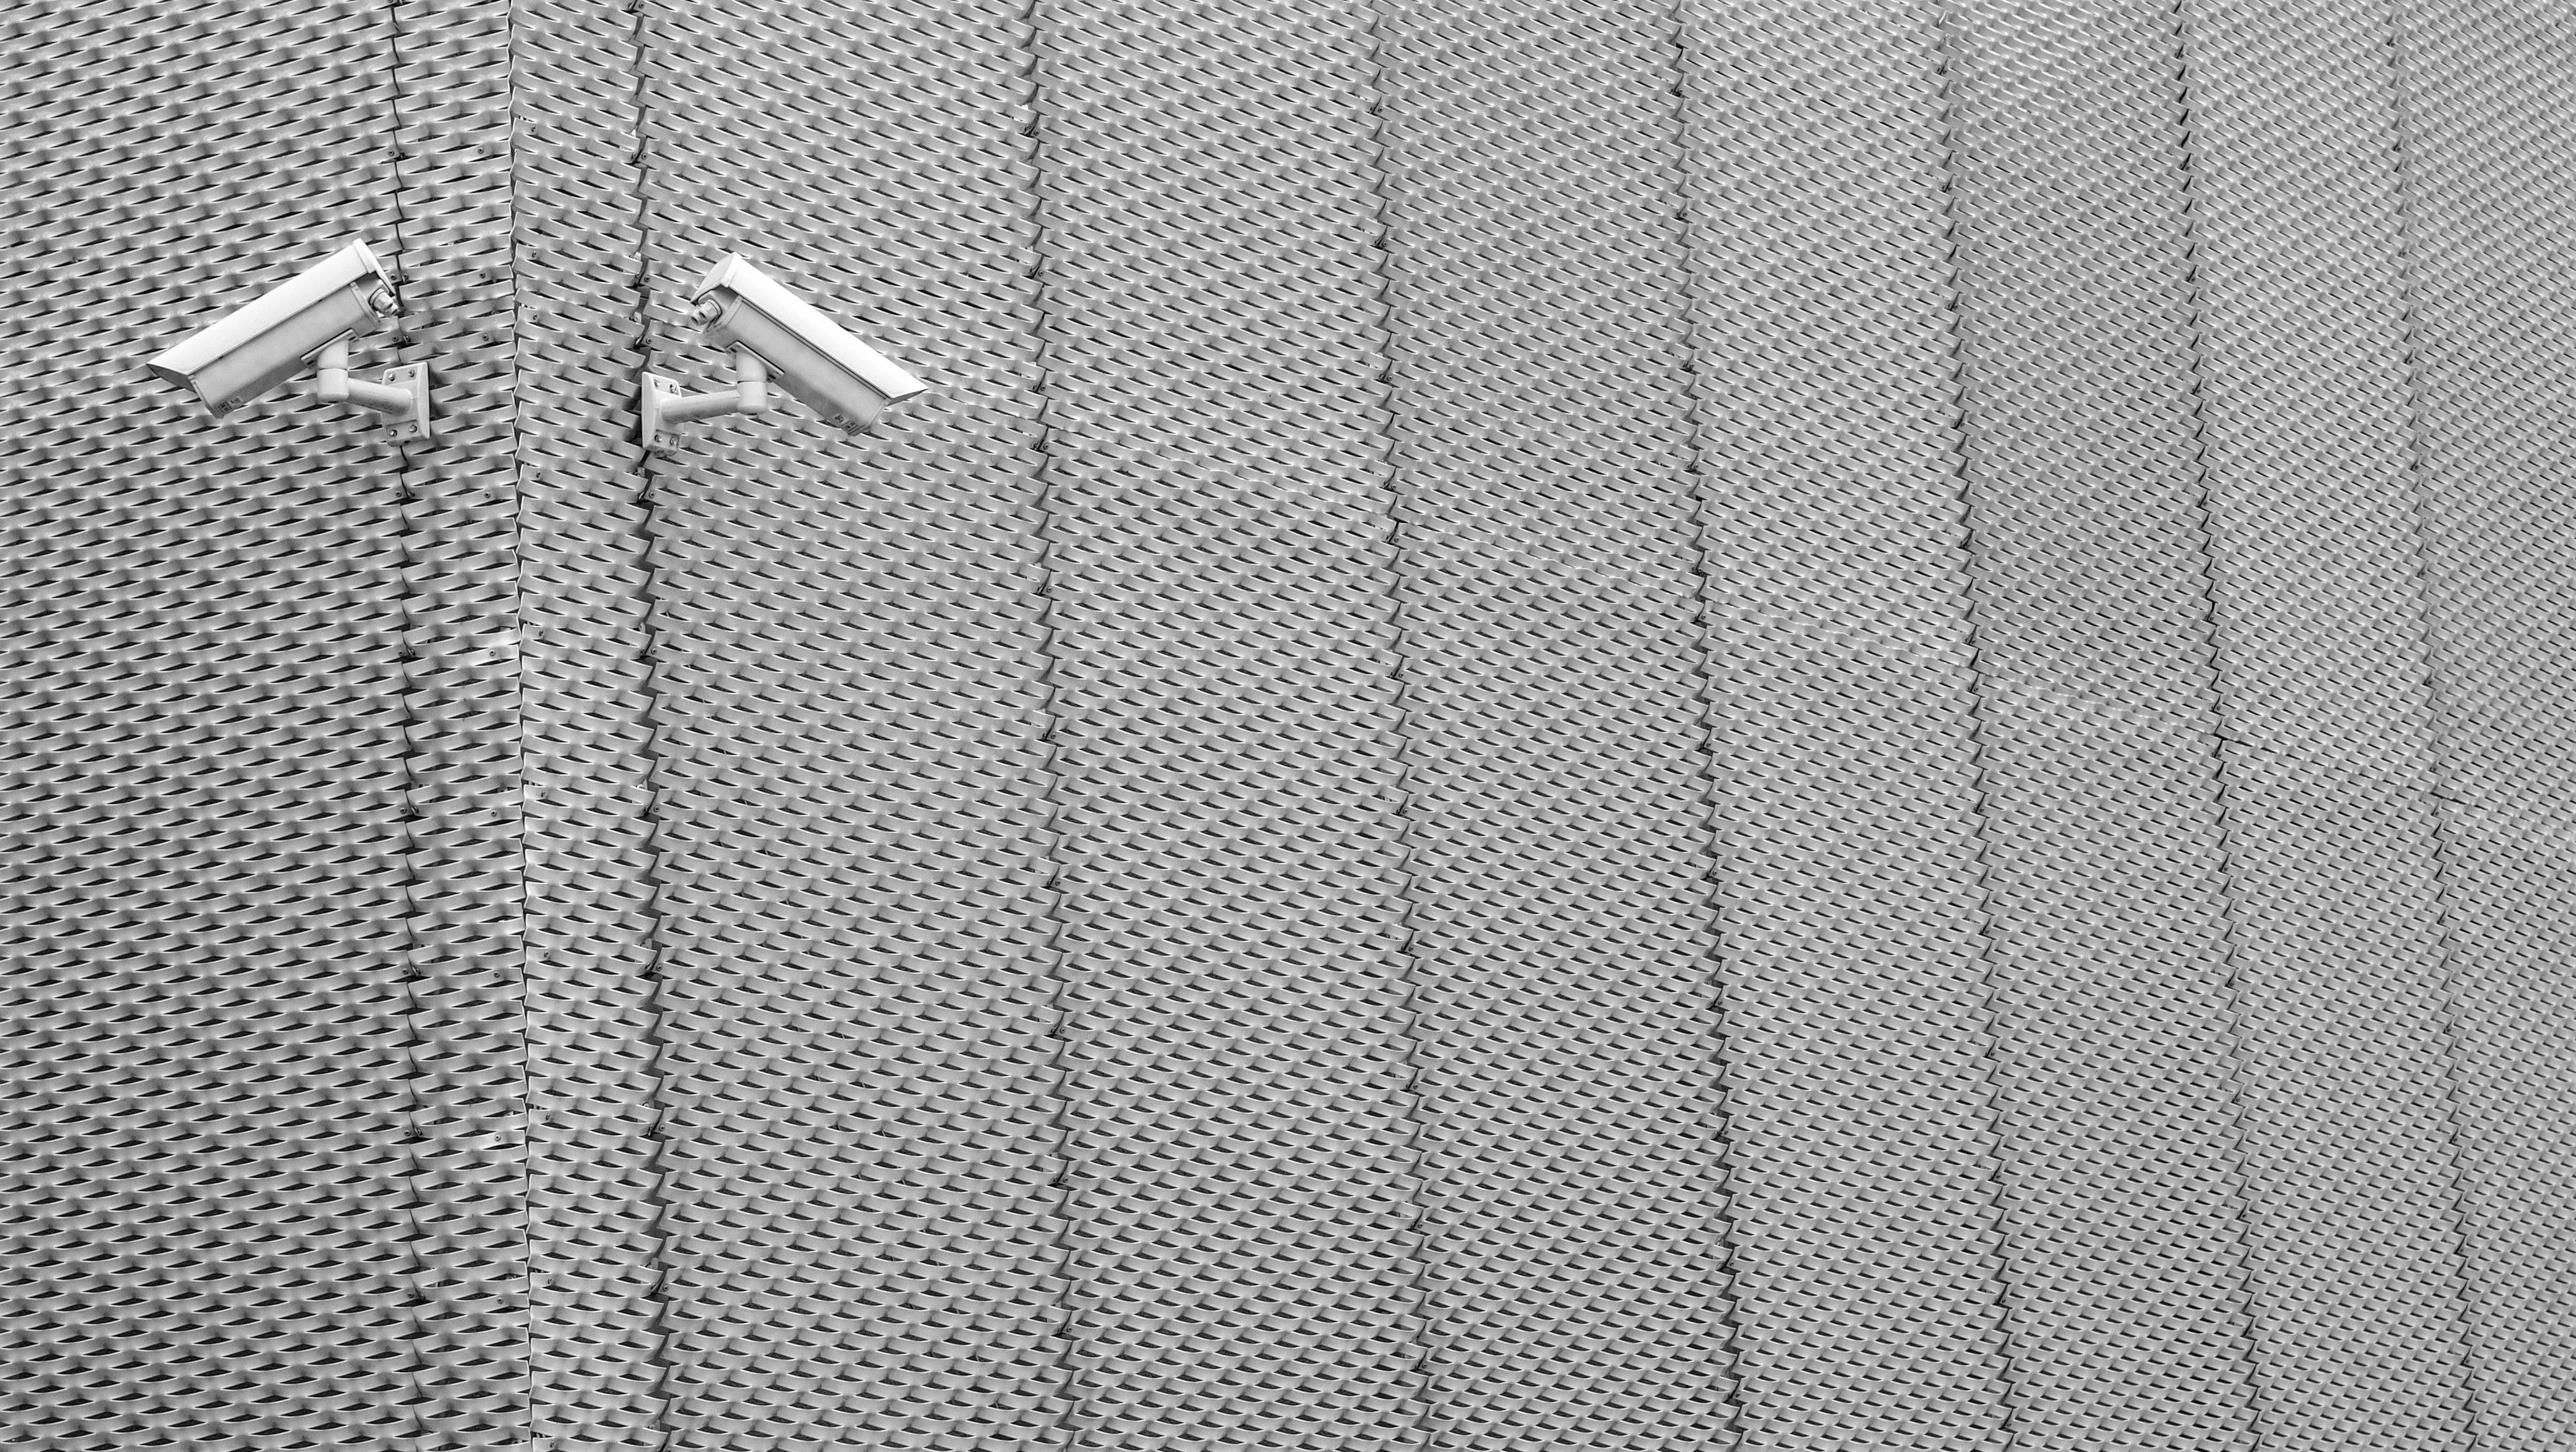 Two Gray Cctv Cameras on Wall